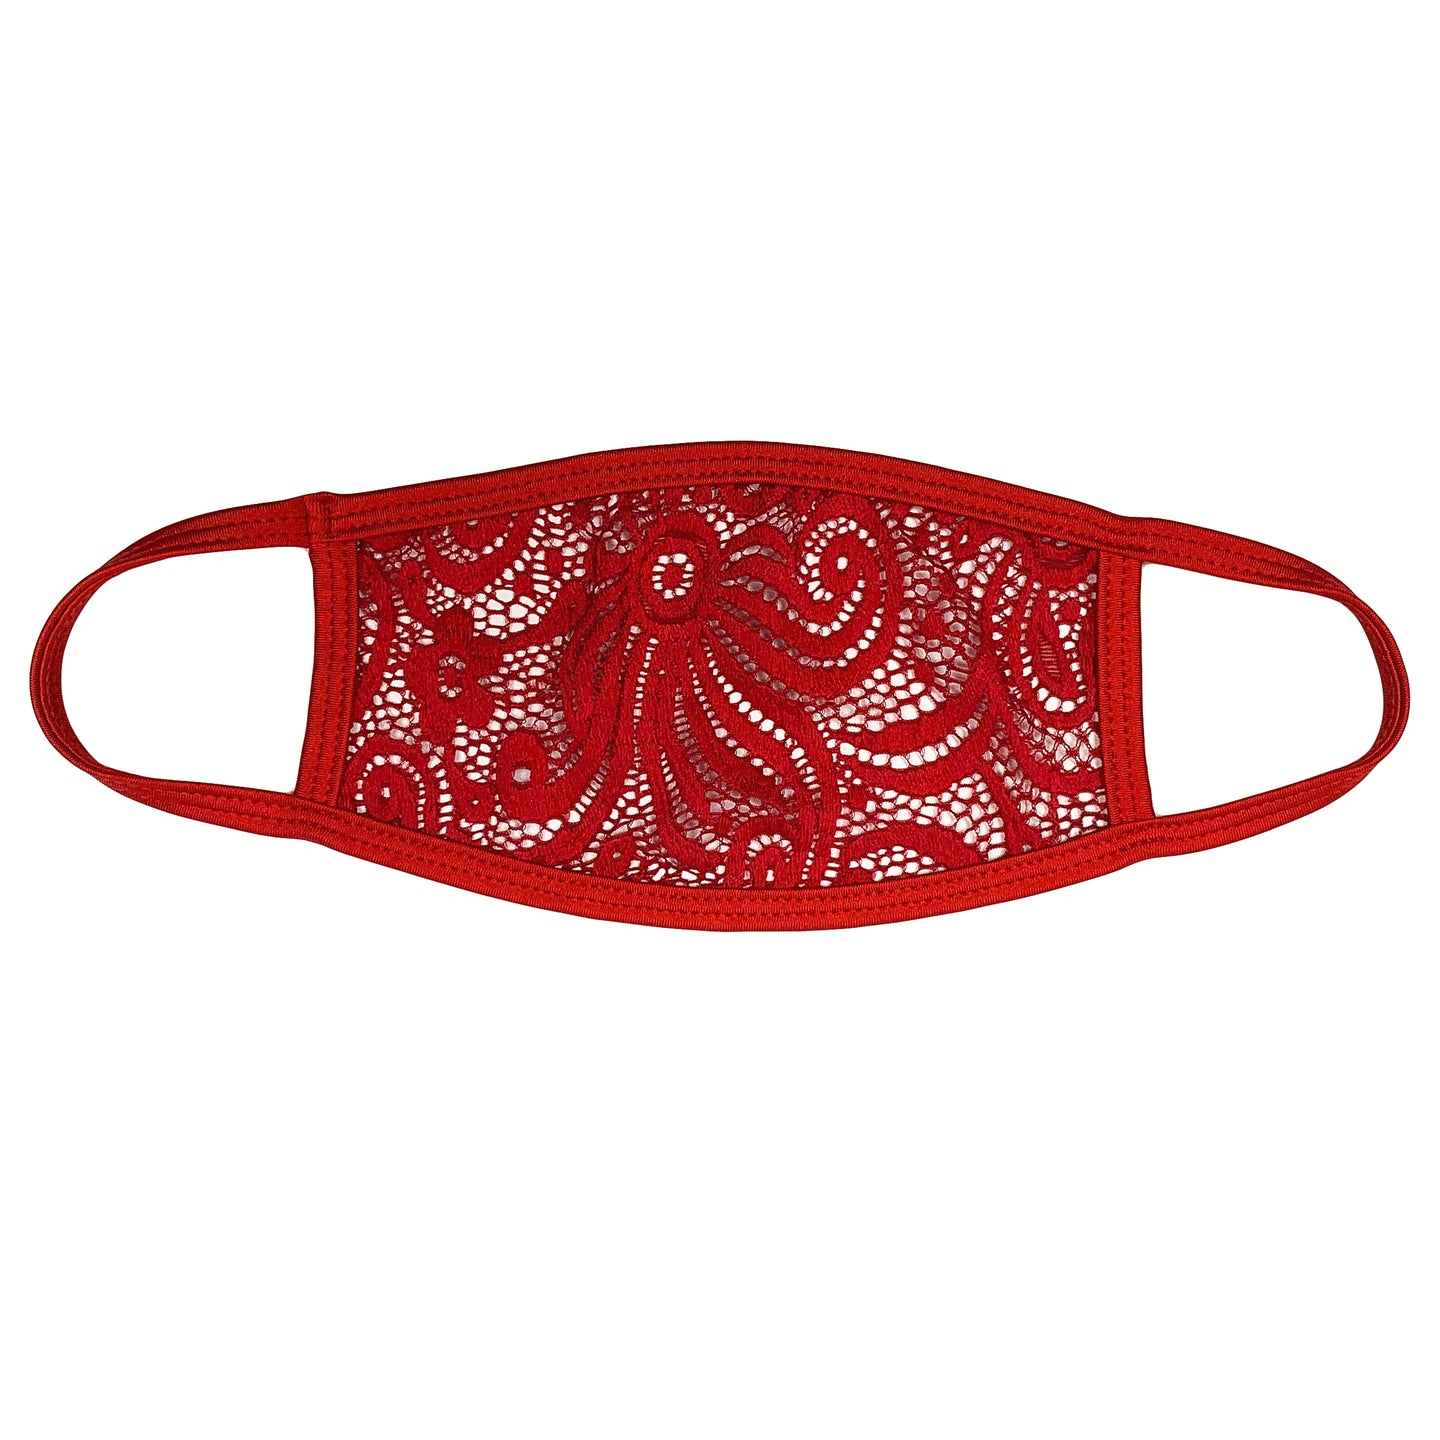 Red Hot Chili Peppers Dust Mask